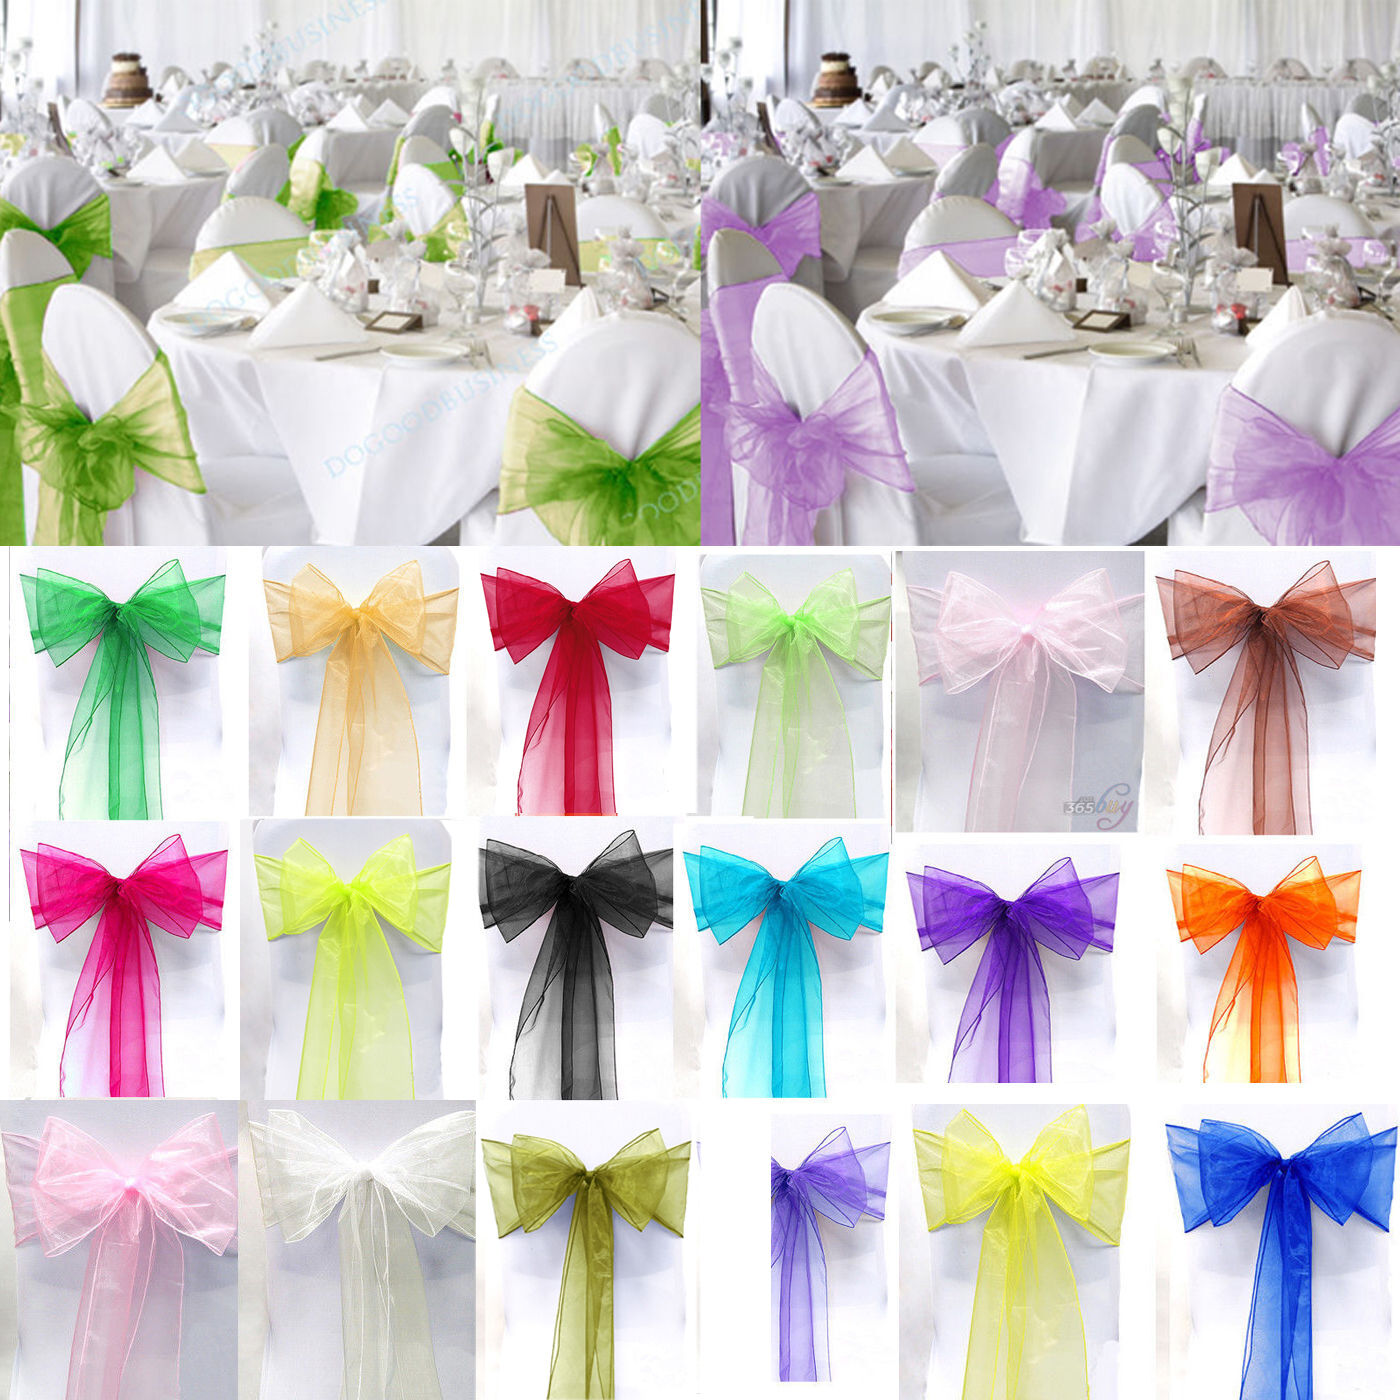 How To Make Chair Sashes Various Color Organza Chair Cover Sash Bow Wedding Party